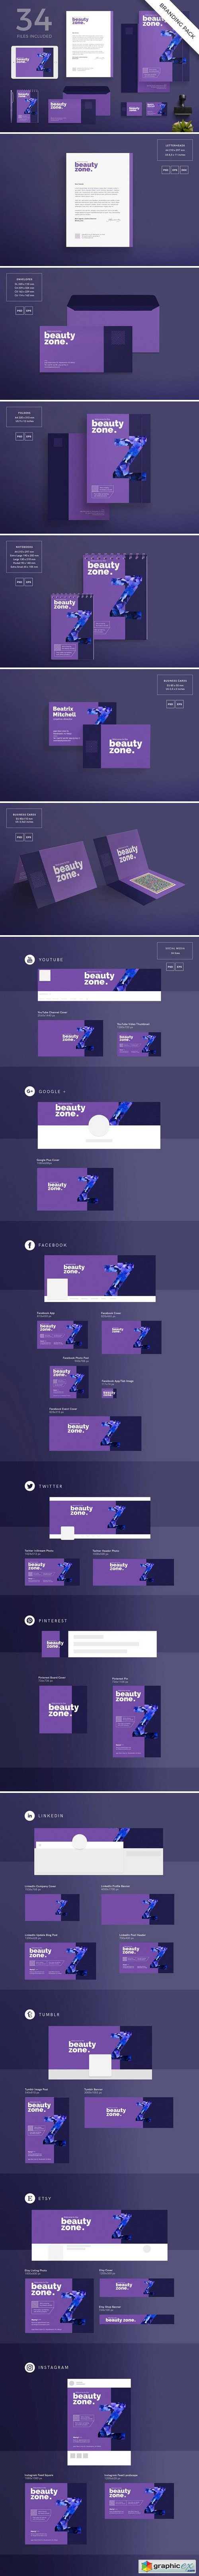 Branding Pack | Beauty Zone